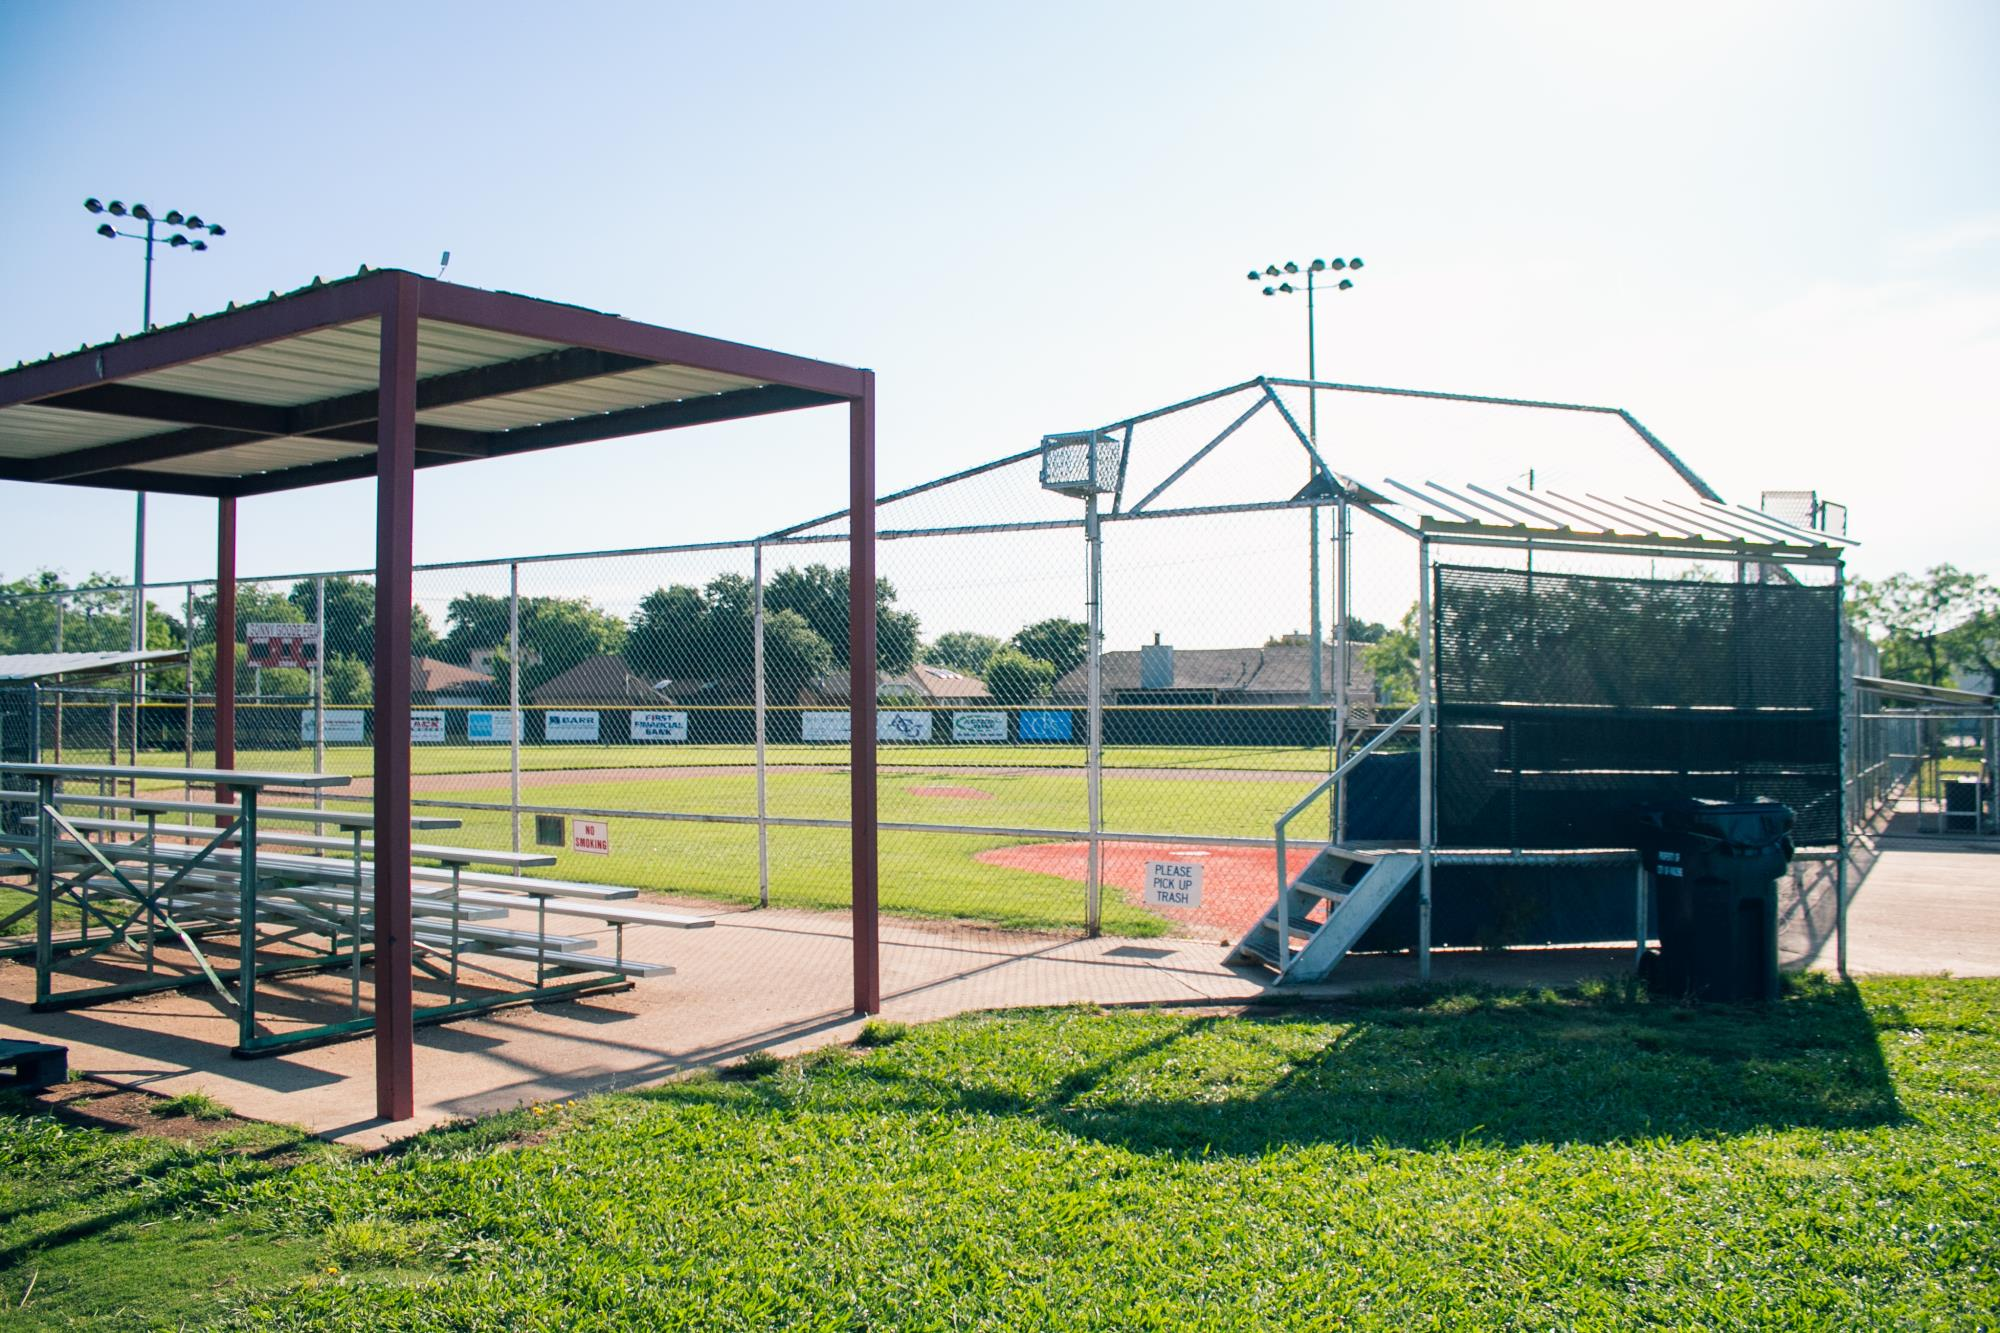 Leftside Bleachers Next to Ballfield